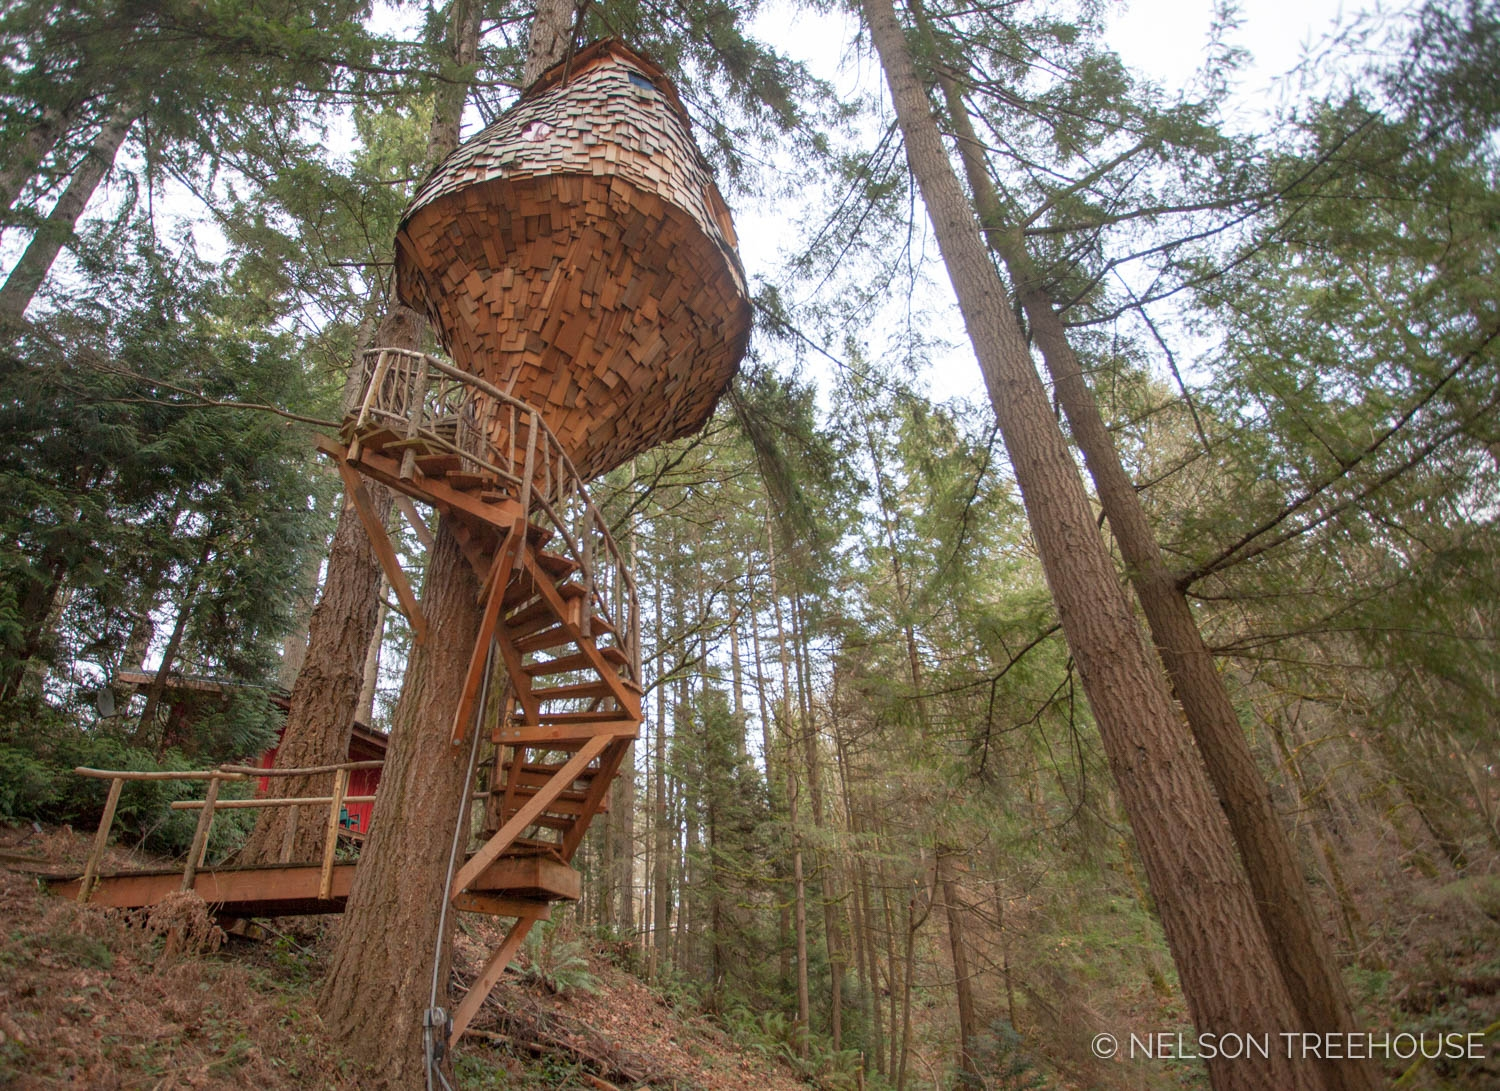 Winding Stairs Design And Construction — Nelson Treehouse   Spiral Staircase Around Tree Trunk   Stair Case   Nelson Treehouse   Staircase Design   Robert Mcintyre   Canopystair